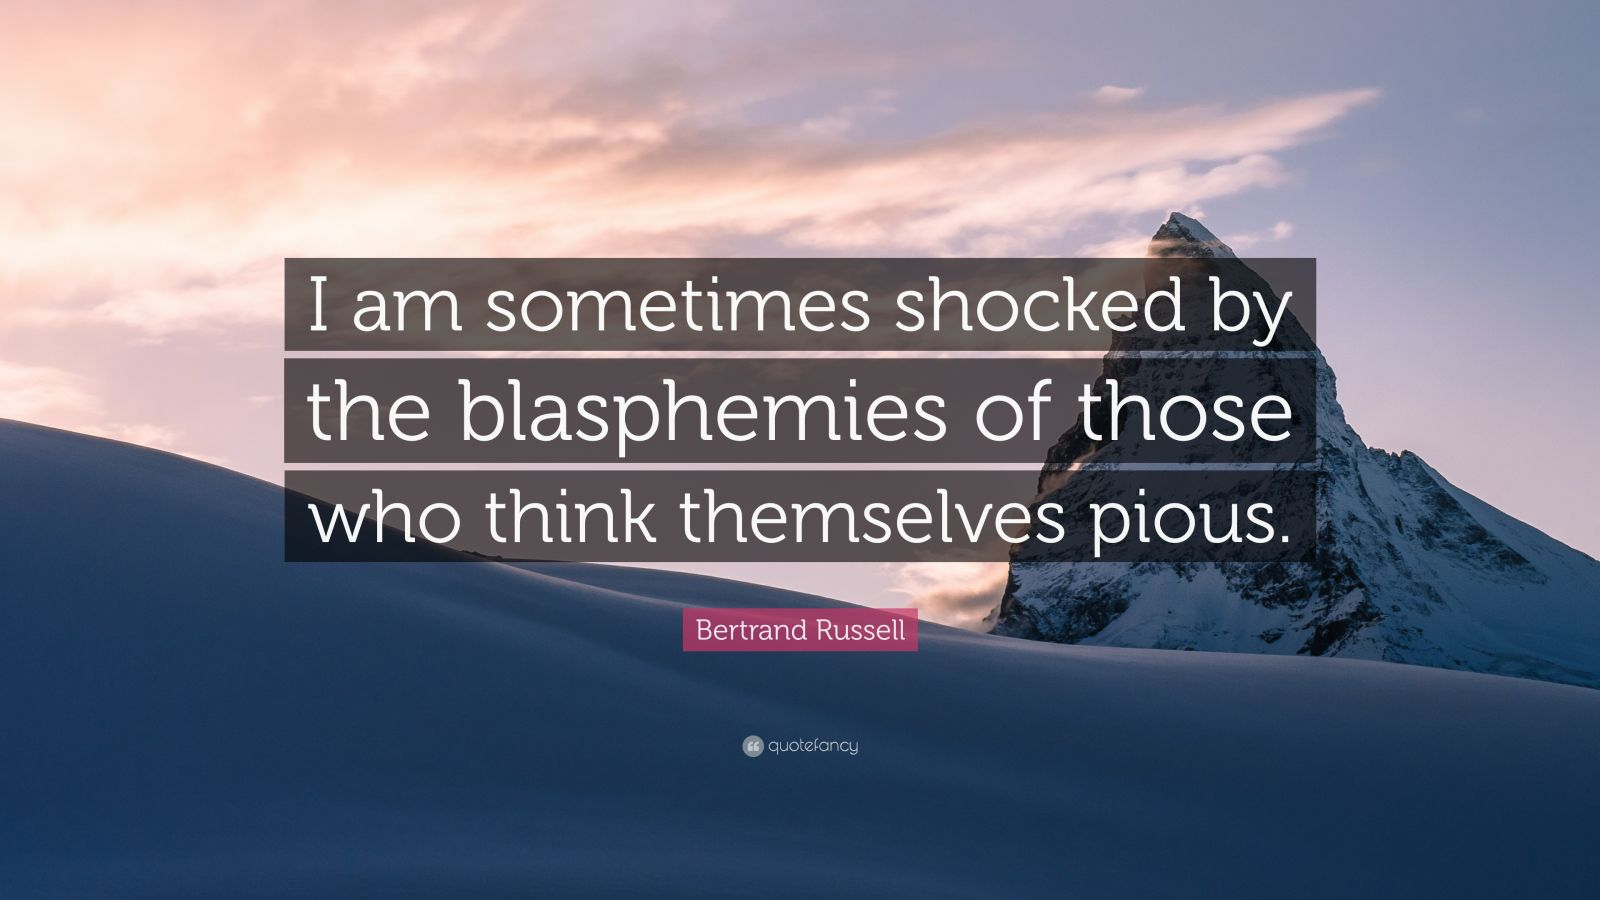 """Bertrand Russell Quote: """"I am sometimes shocked by the blasphemies of those who think themselves pious."""""""